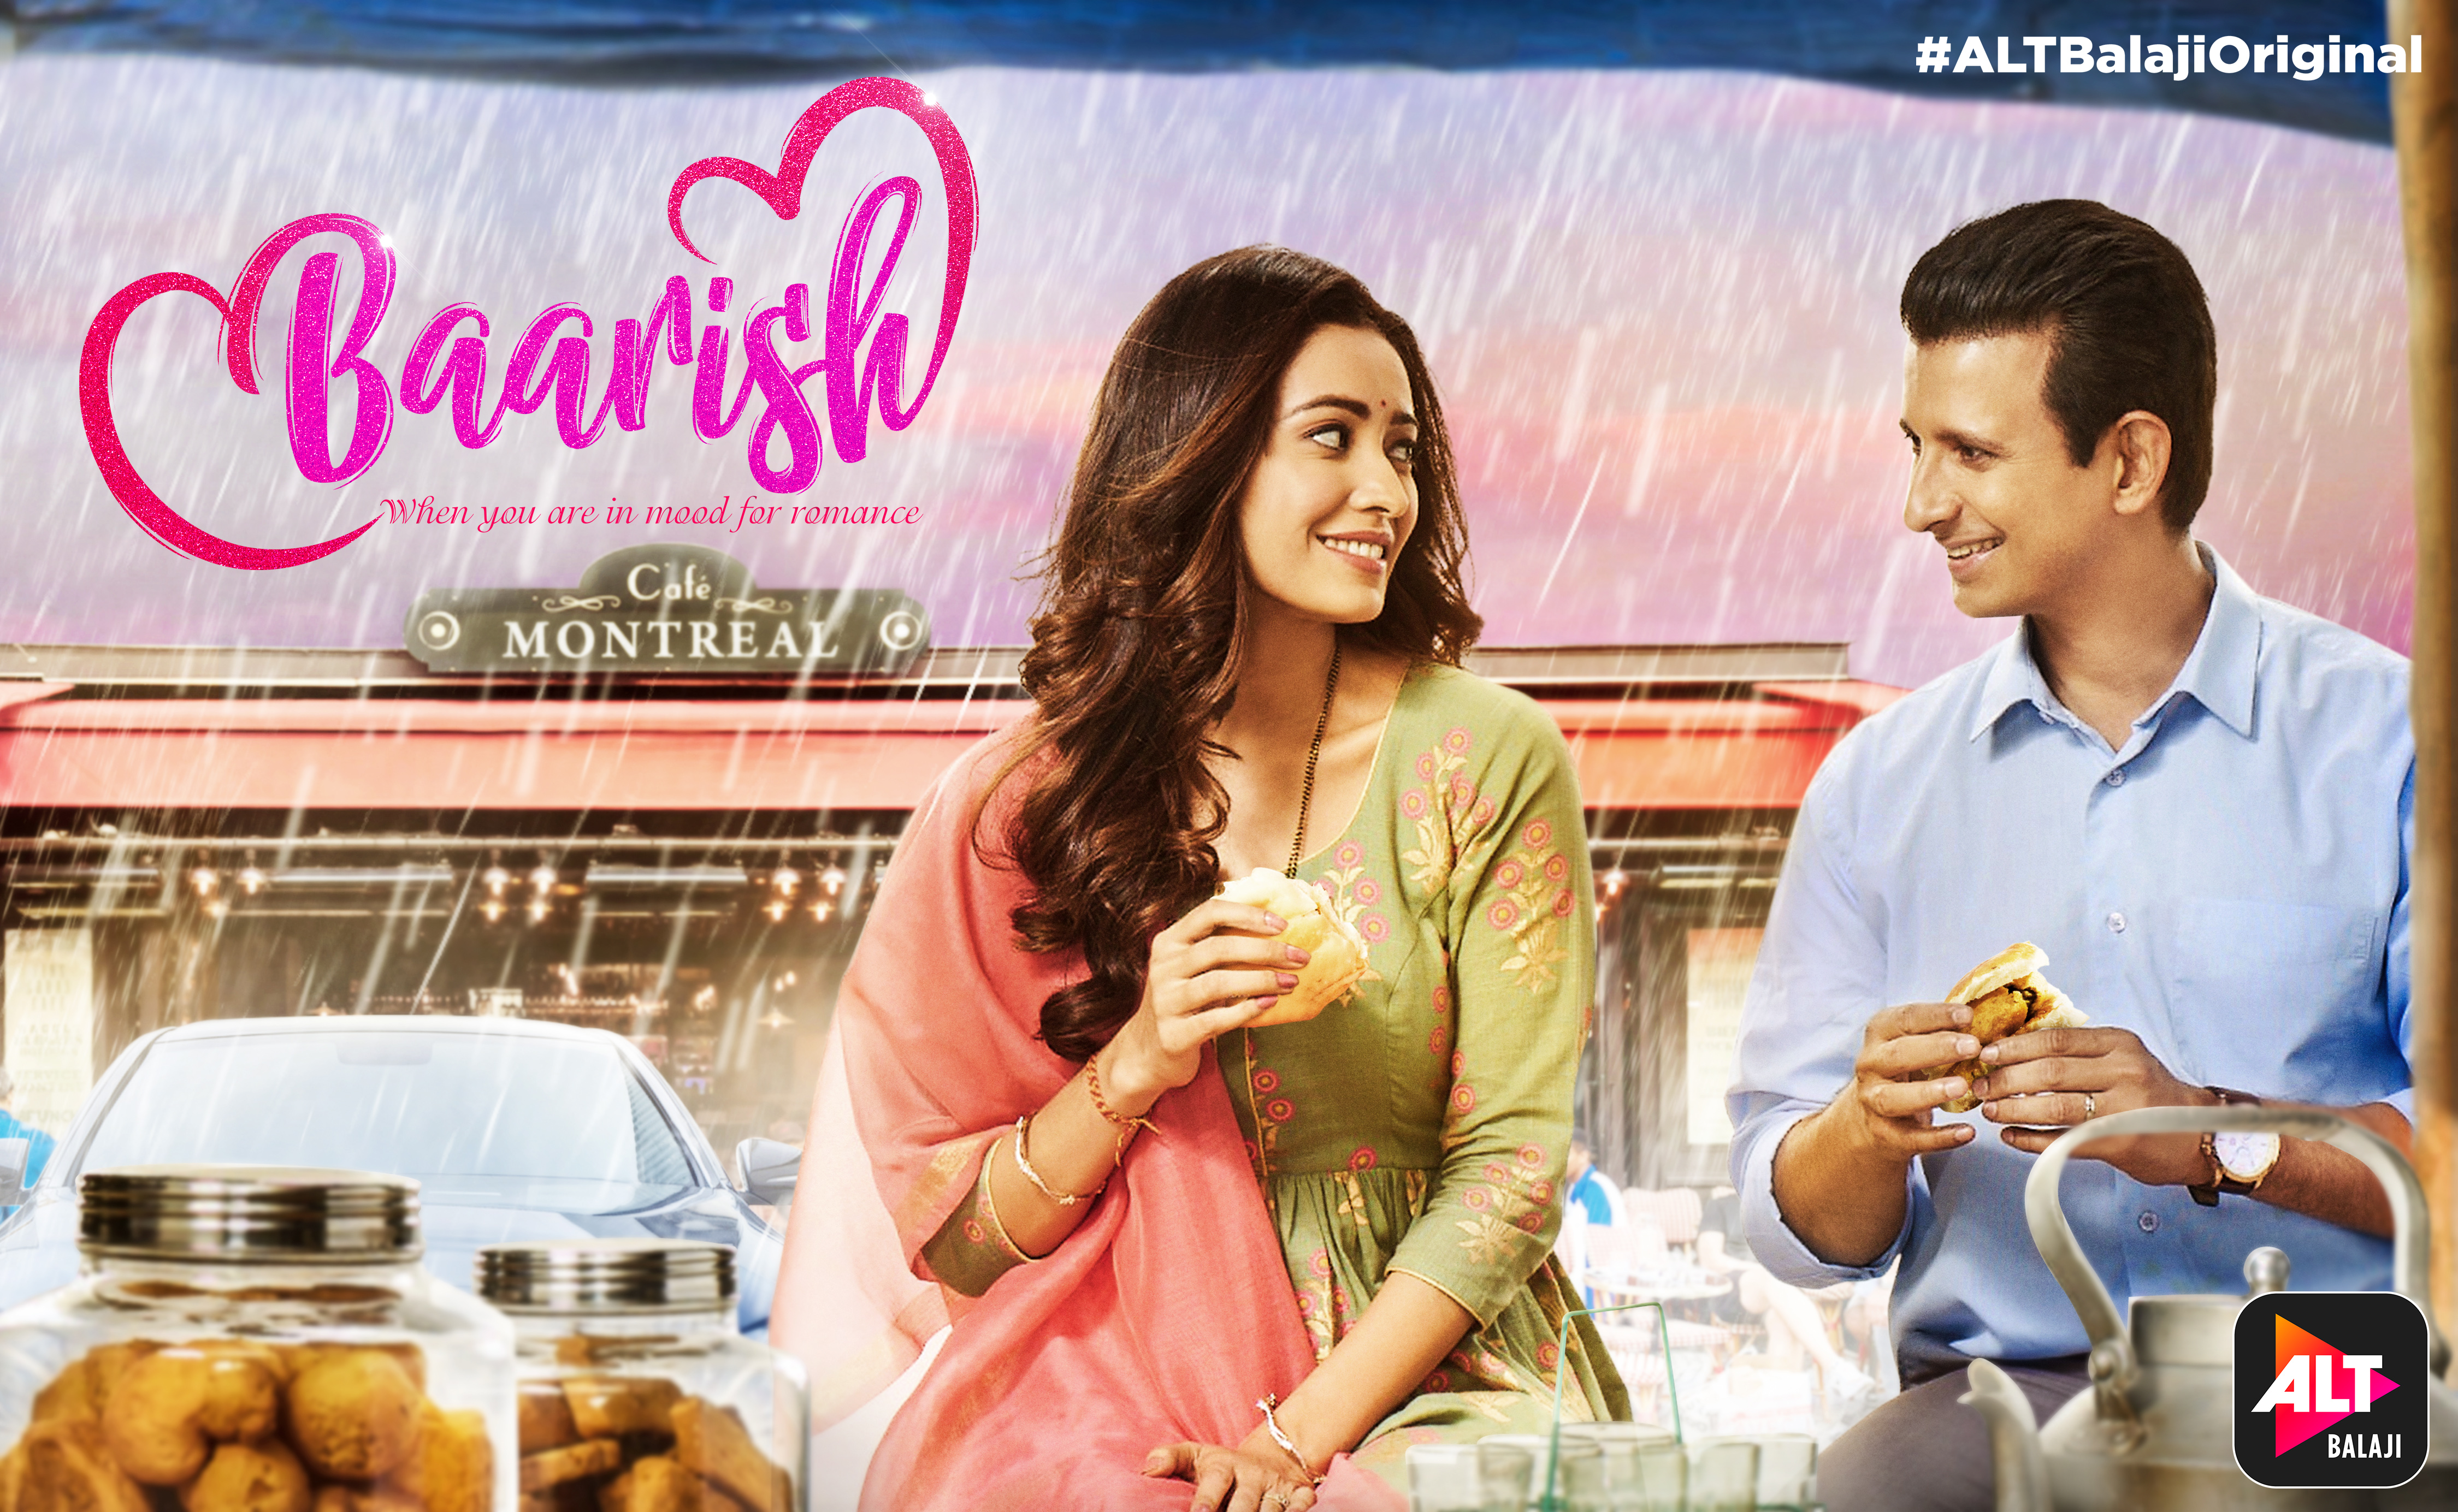 ALTBalaji | Baarish | All episodes streaming now